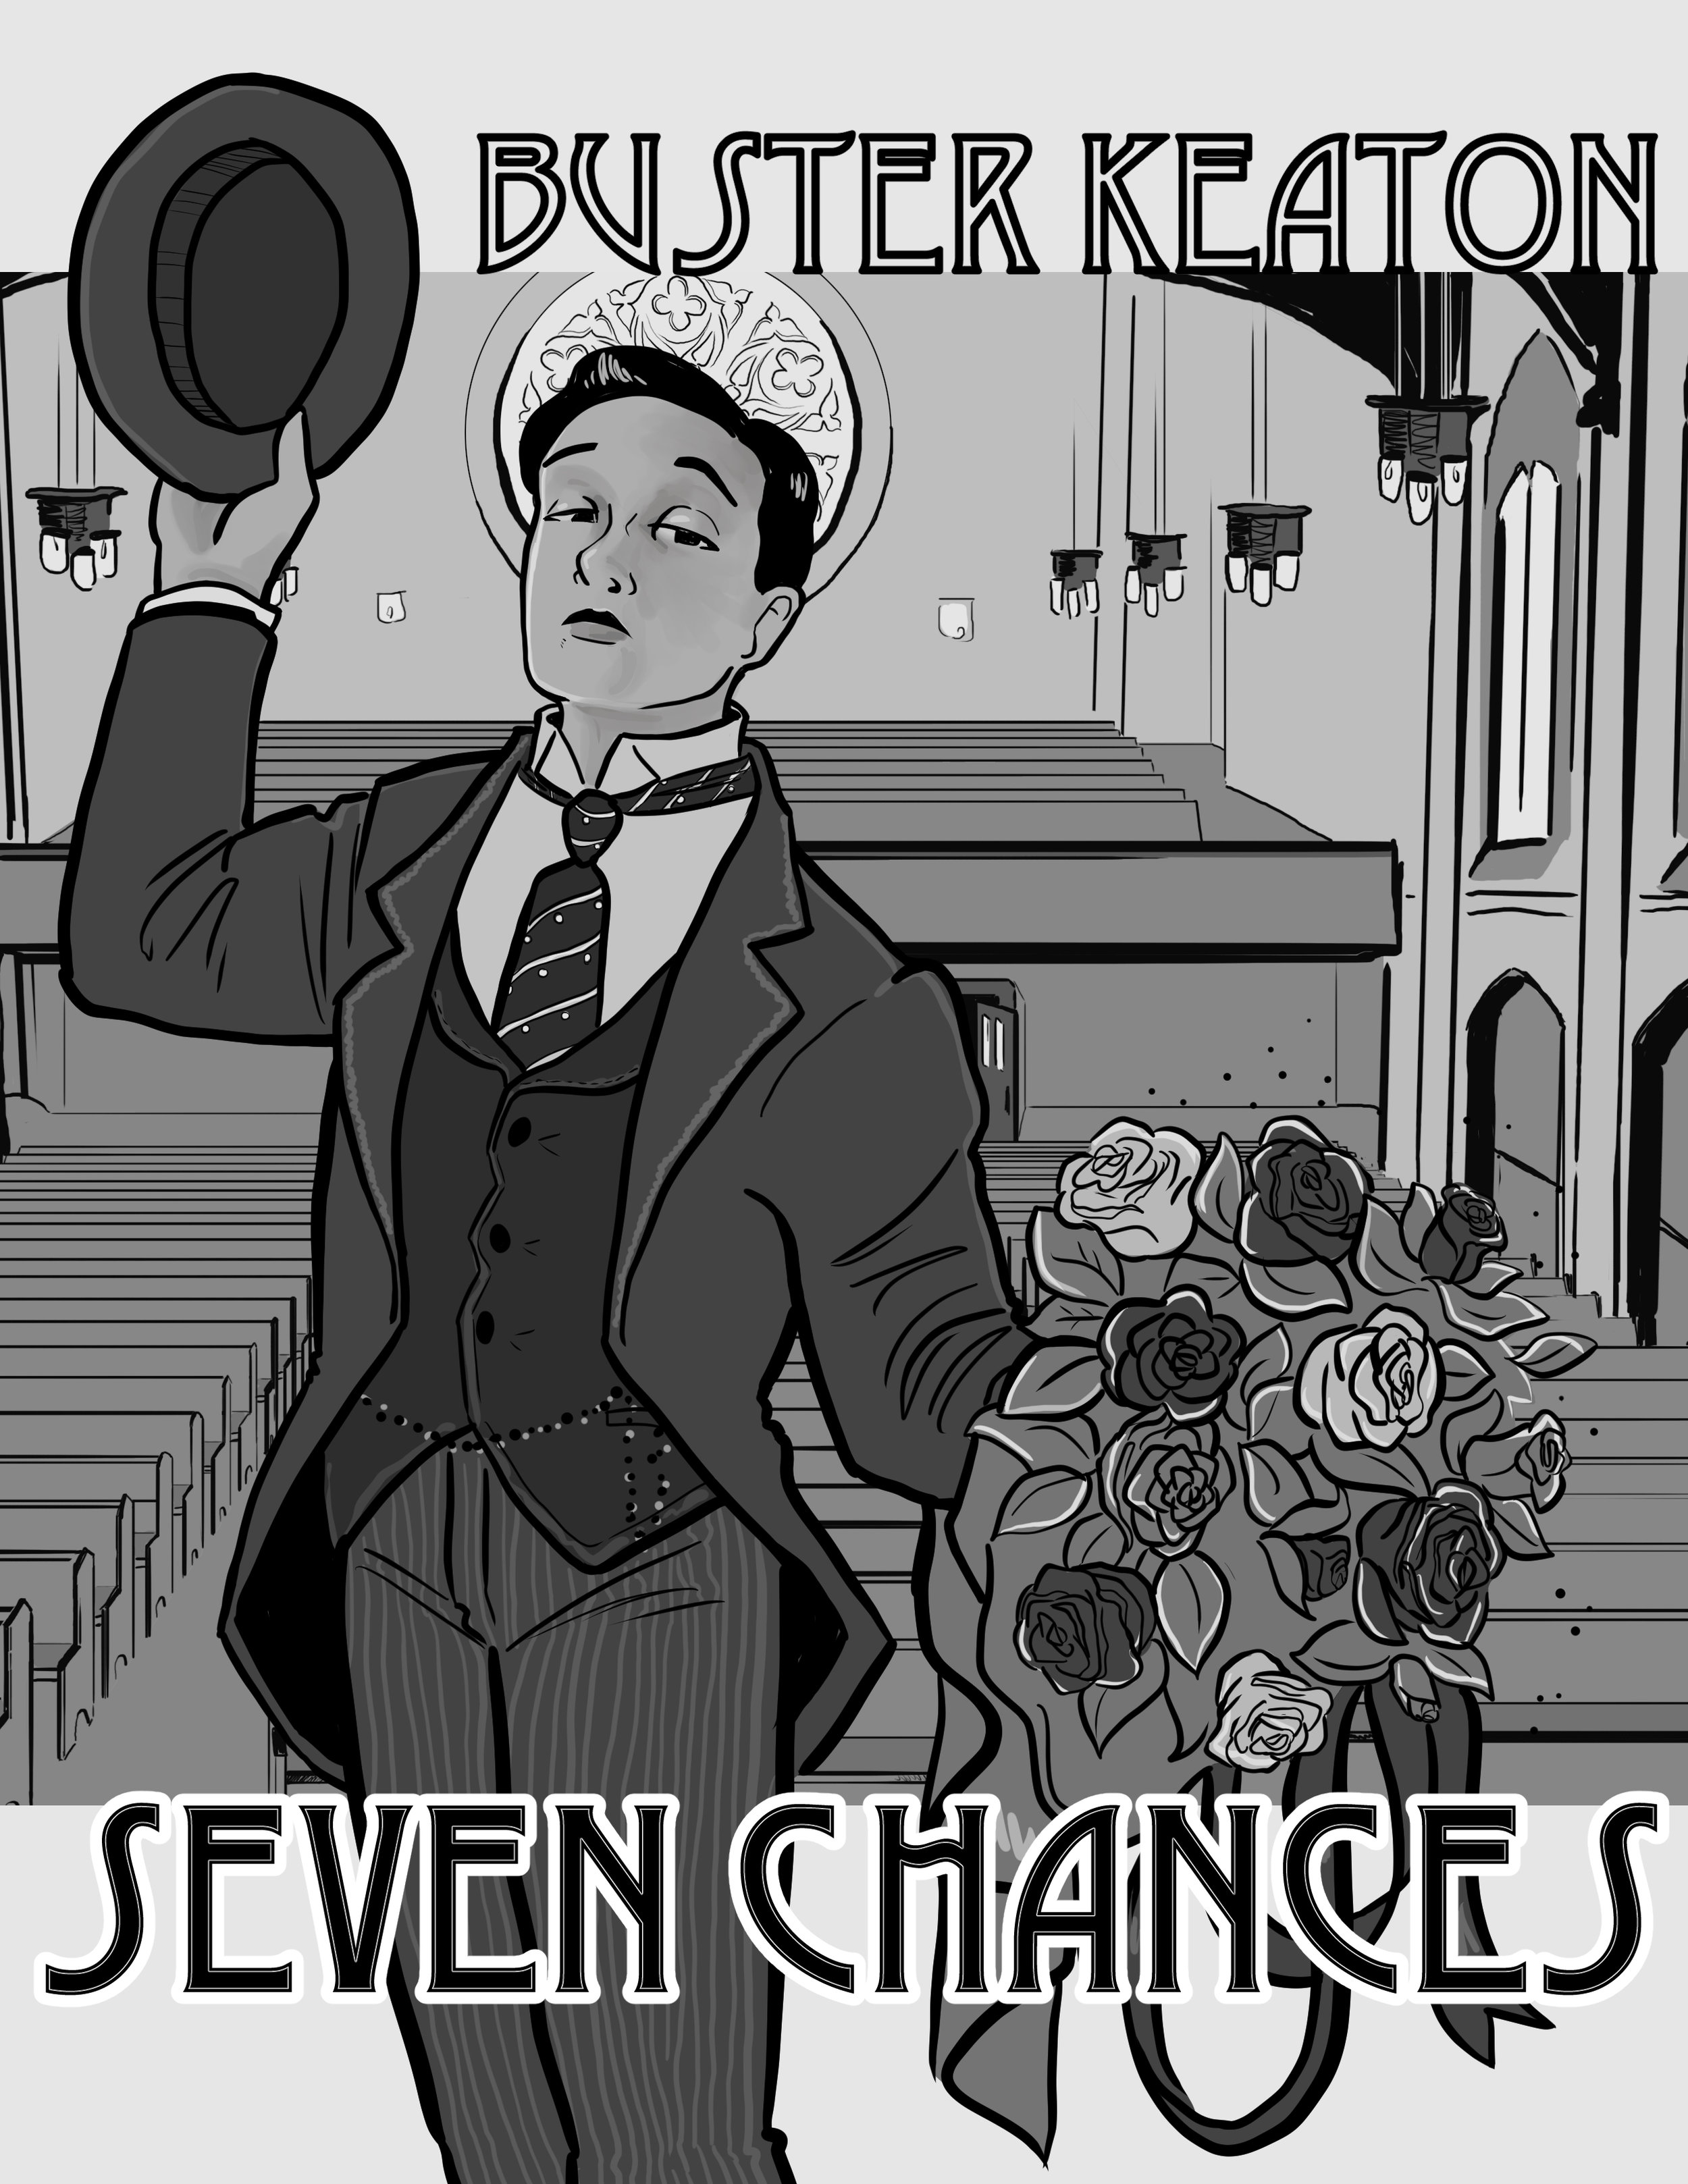 Buster Keaton in Seven Chances